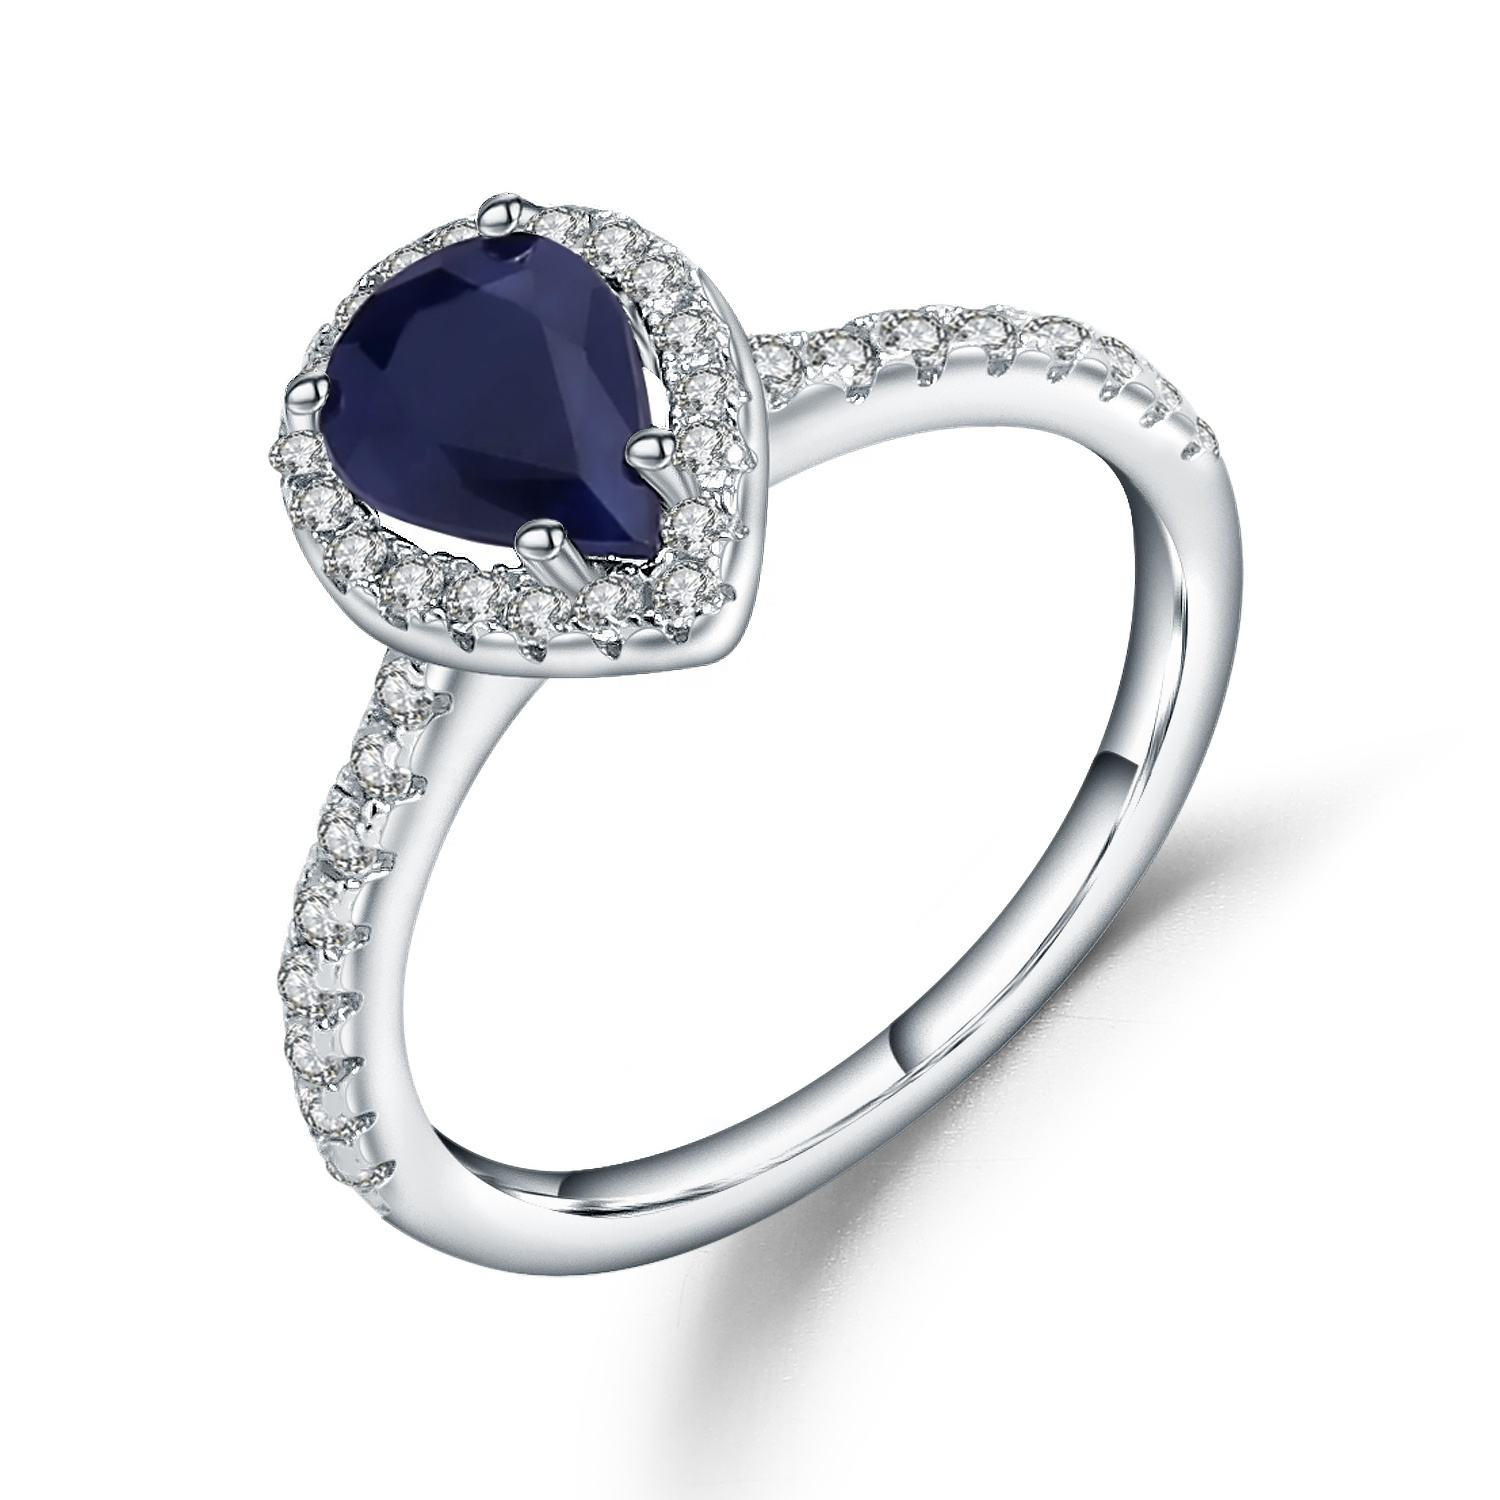 Abiding Classic Natural Blue Sapphire Engagement Finger Ring Half Eternity Diamond Silver Wedding Jewelry Rings